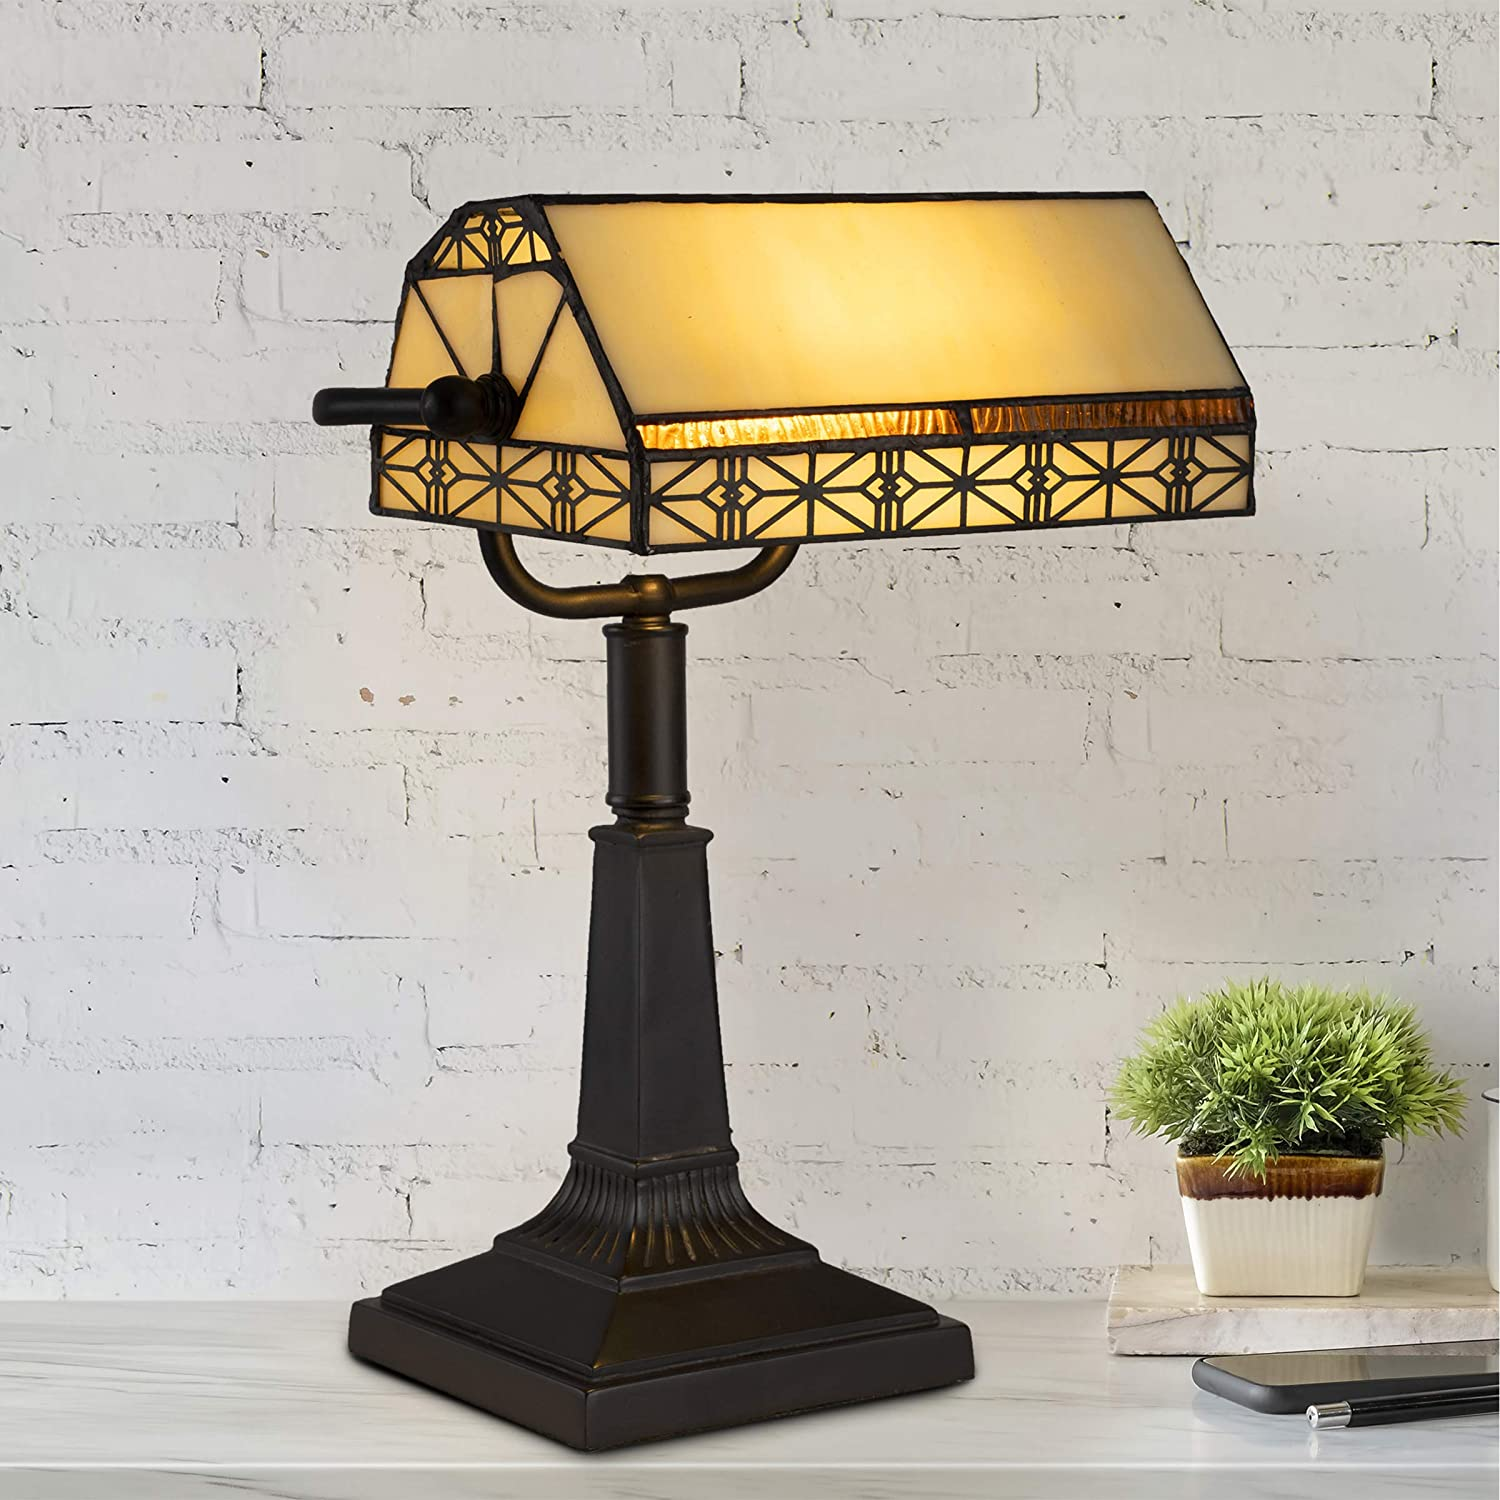 Lavish Home A1000840 Bankers Lamp – Tiffany Table or Desk Light Stained Glass Shade LED Bulb Included – Vintage Look Mission Style Accent Decor, Multi-Color